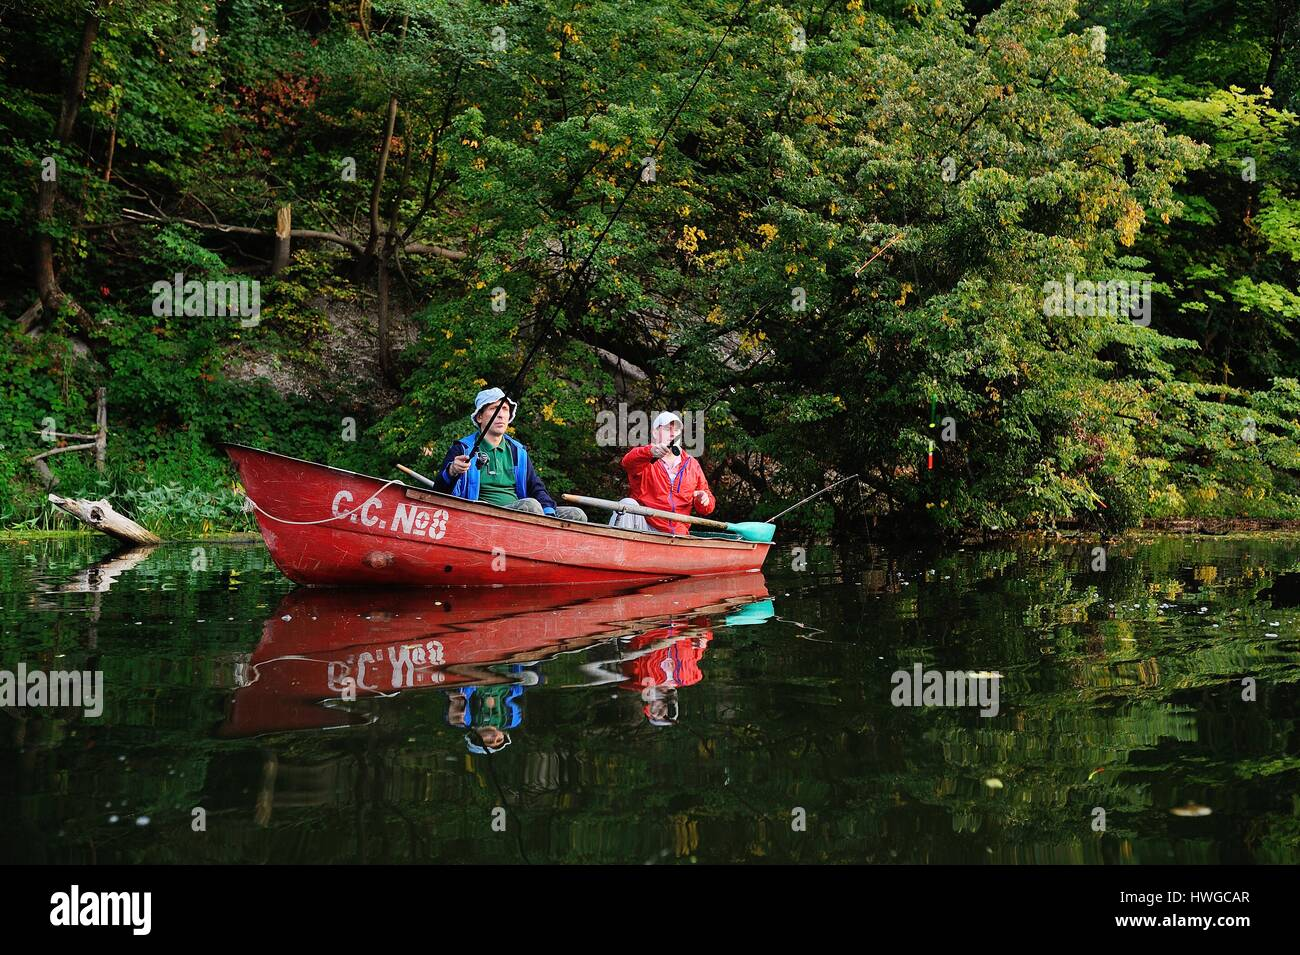 Two fishermen in a boat with fishing rods catching fish - Stock Image